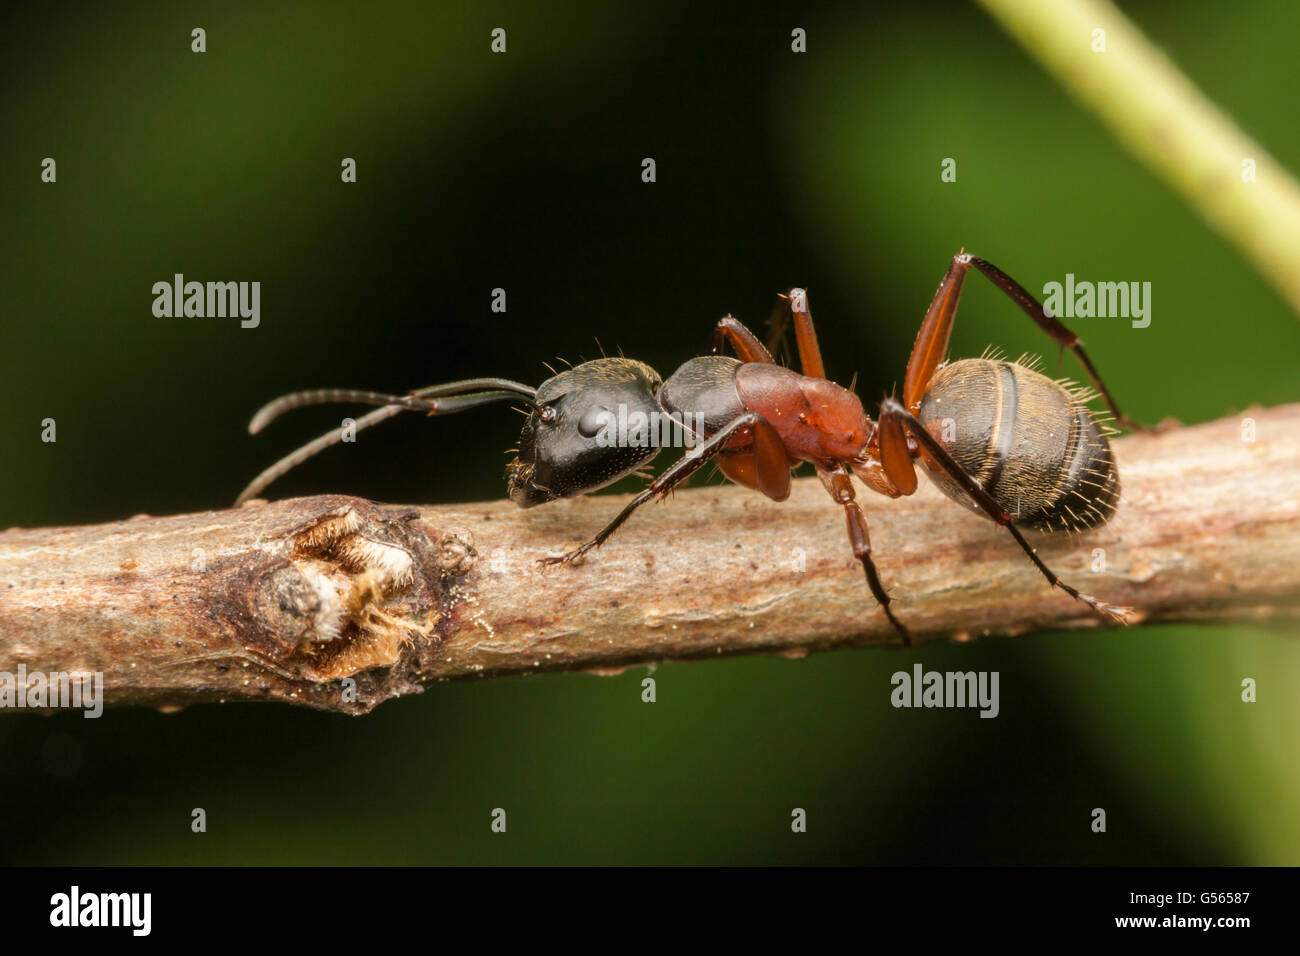 A Ferruginous Carpenter Ant (Camponotus chromaiodes) walks on a plant stem. - Stock Image